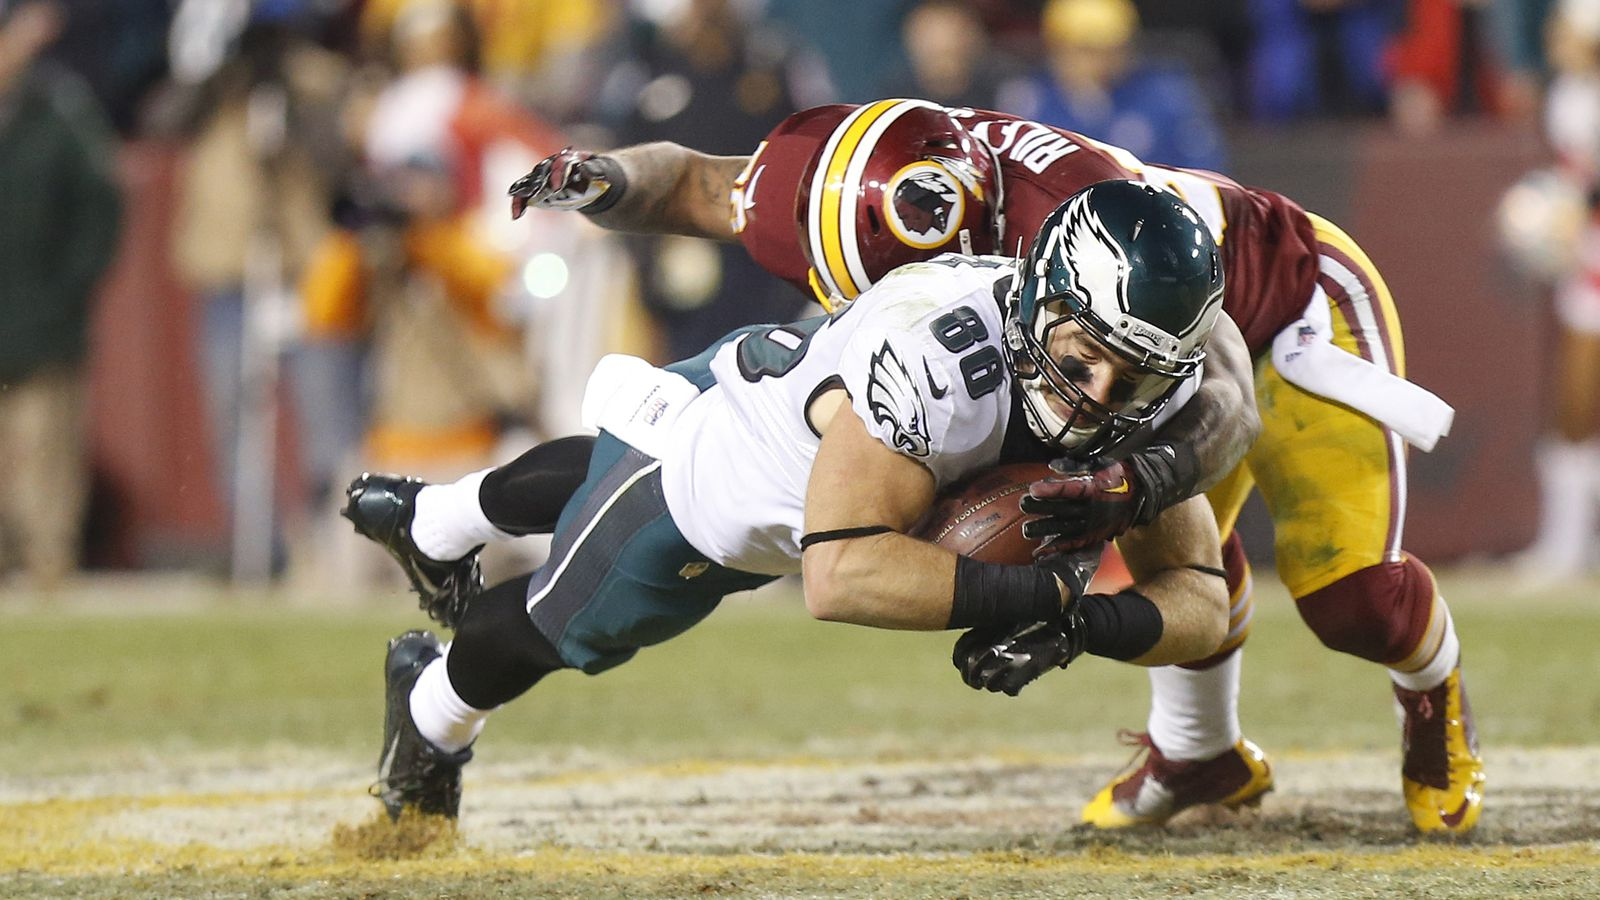 Nfl Confirms Eagles Vs Redskins Game Will Take Place At